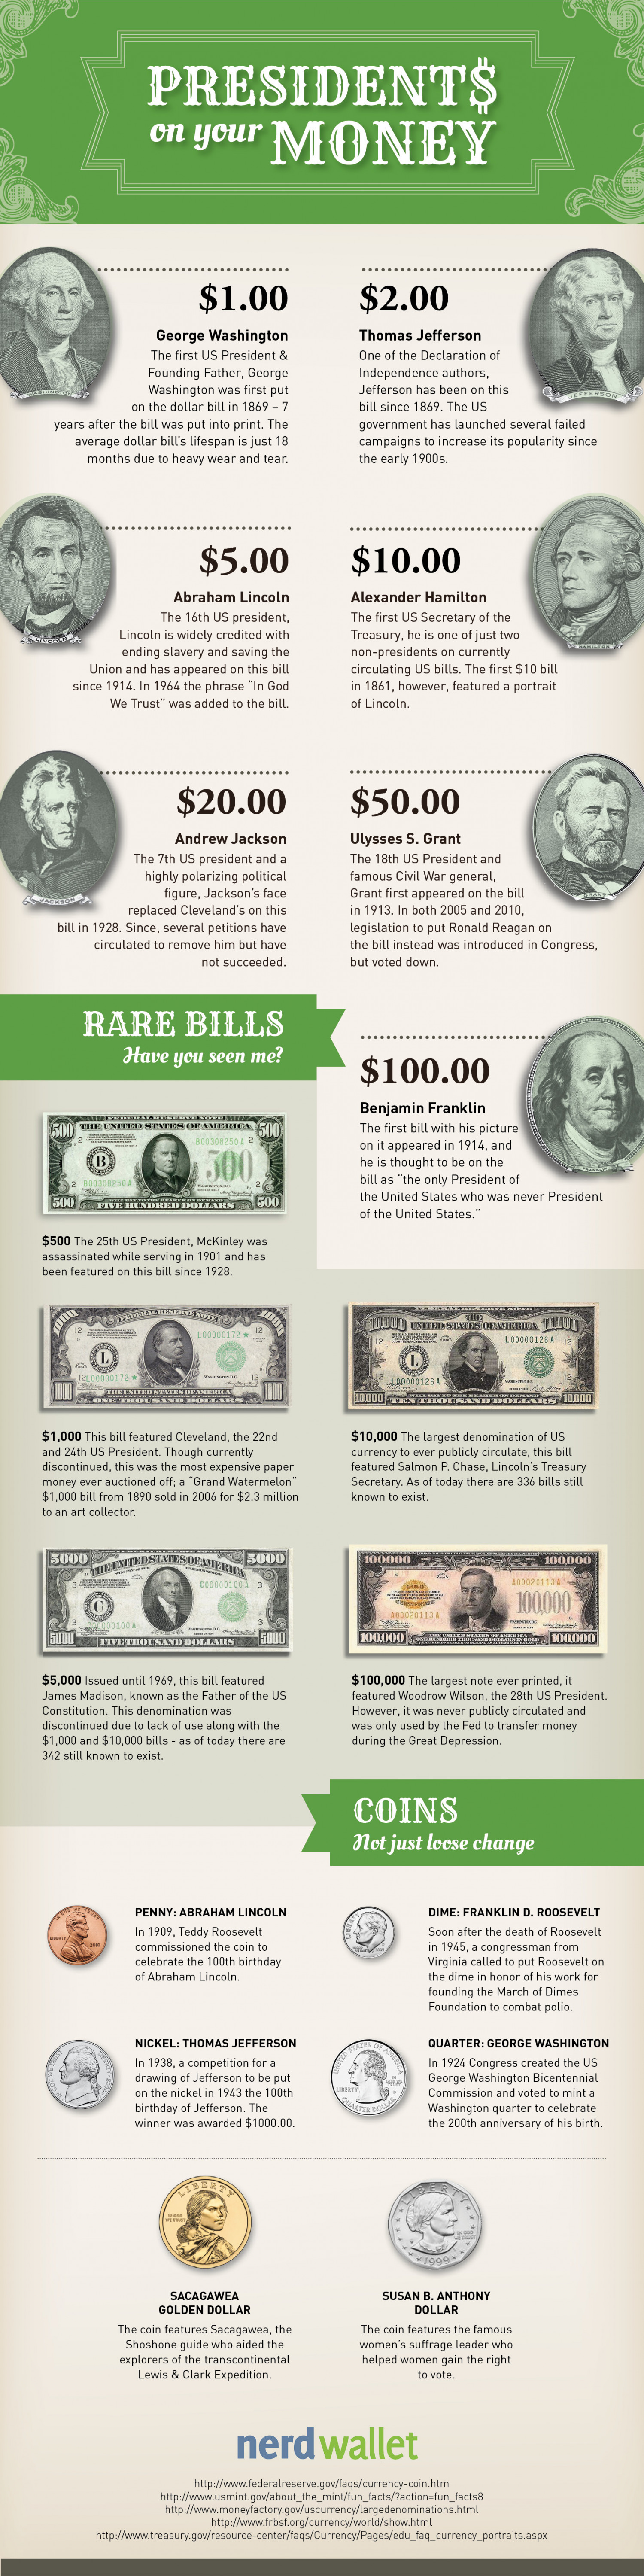 Presidents On Your Money Infographic